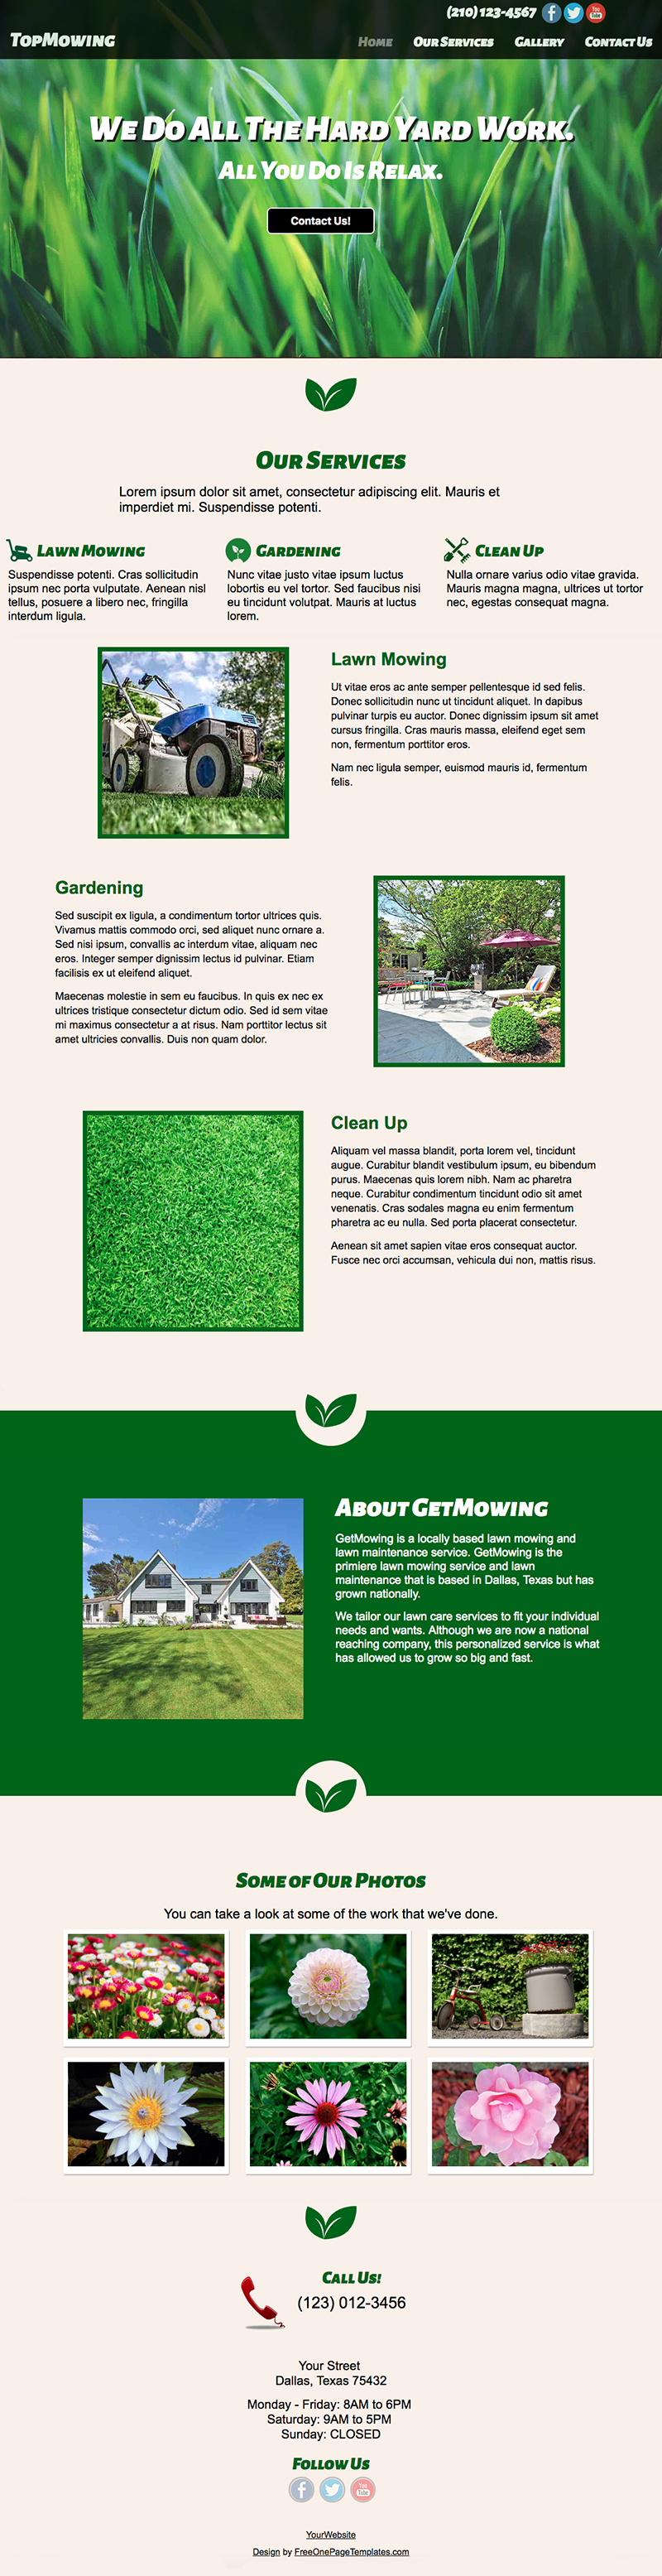 Free One Page Landscaping Website Template - Top Mowing Preview Page